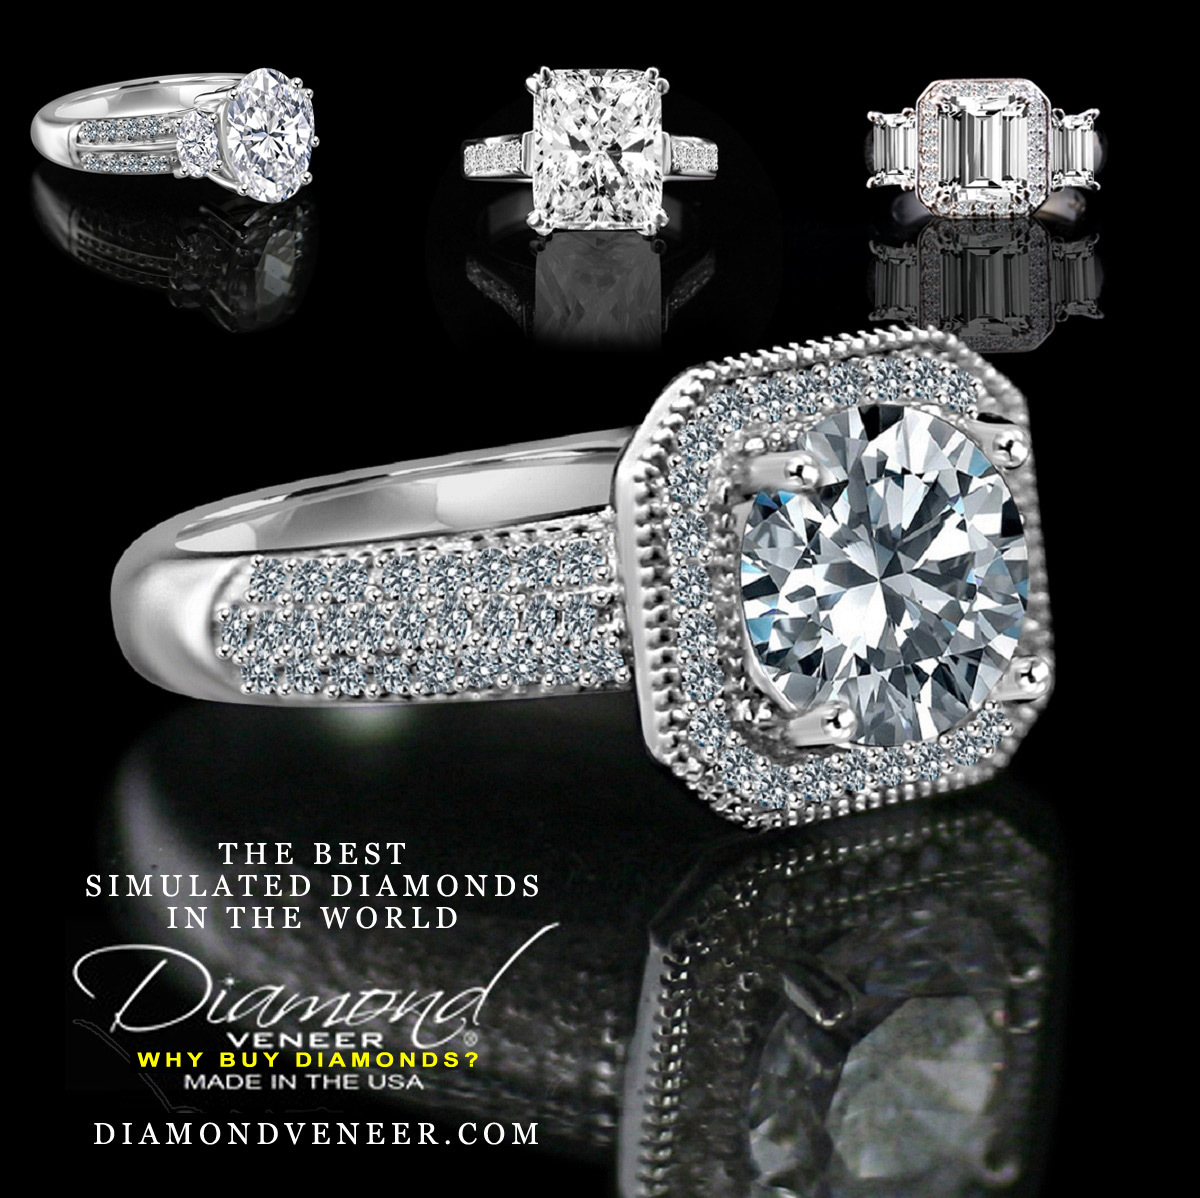 The Best Simulated Diamond Jewelry by Diamond Veneer